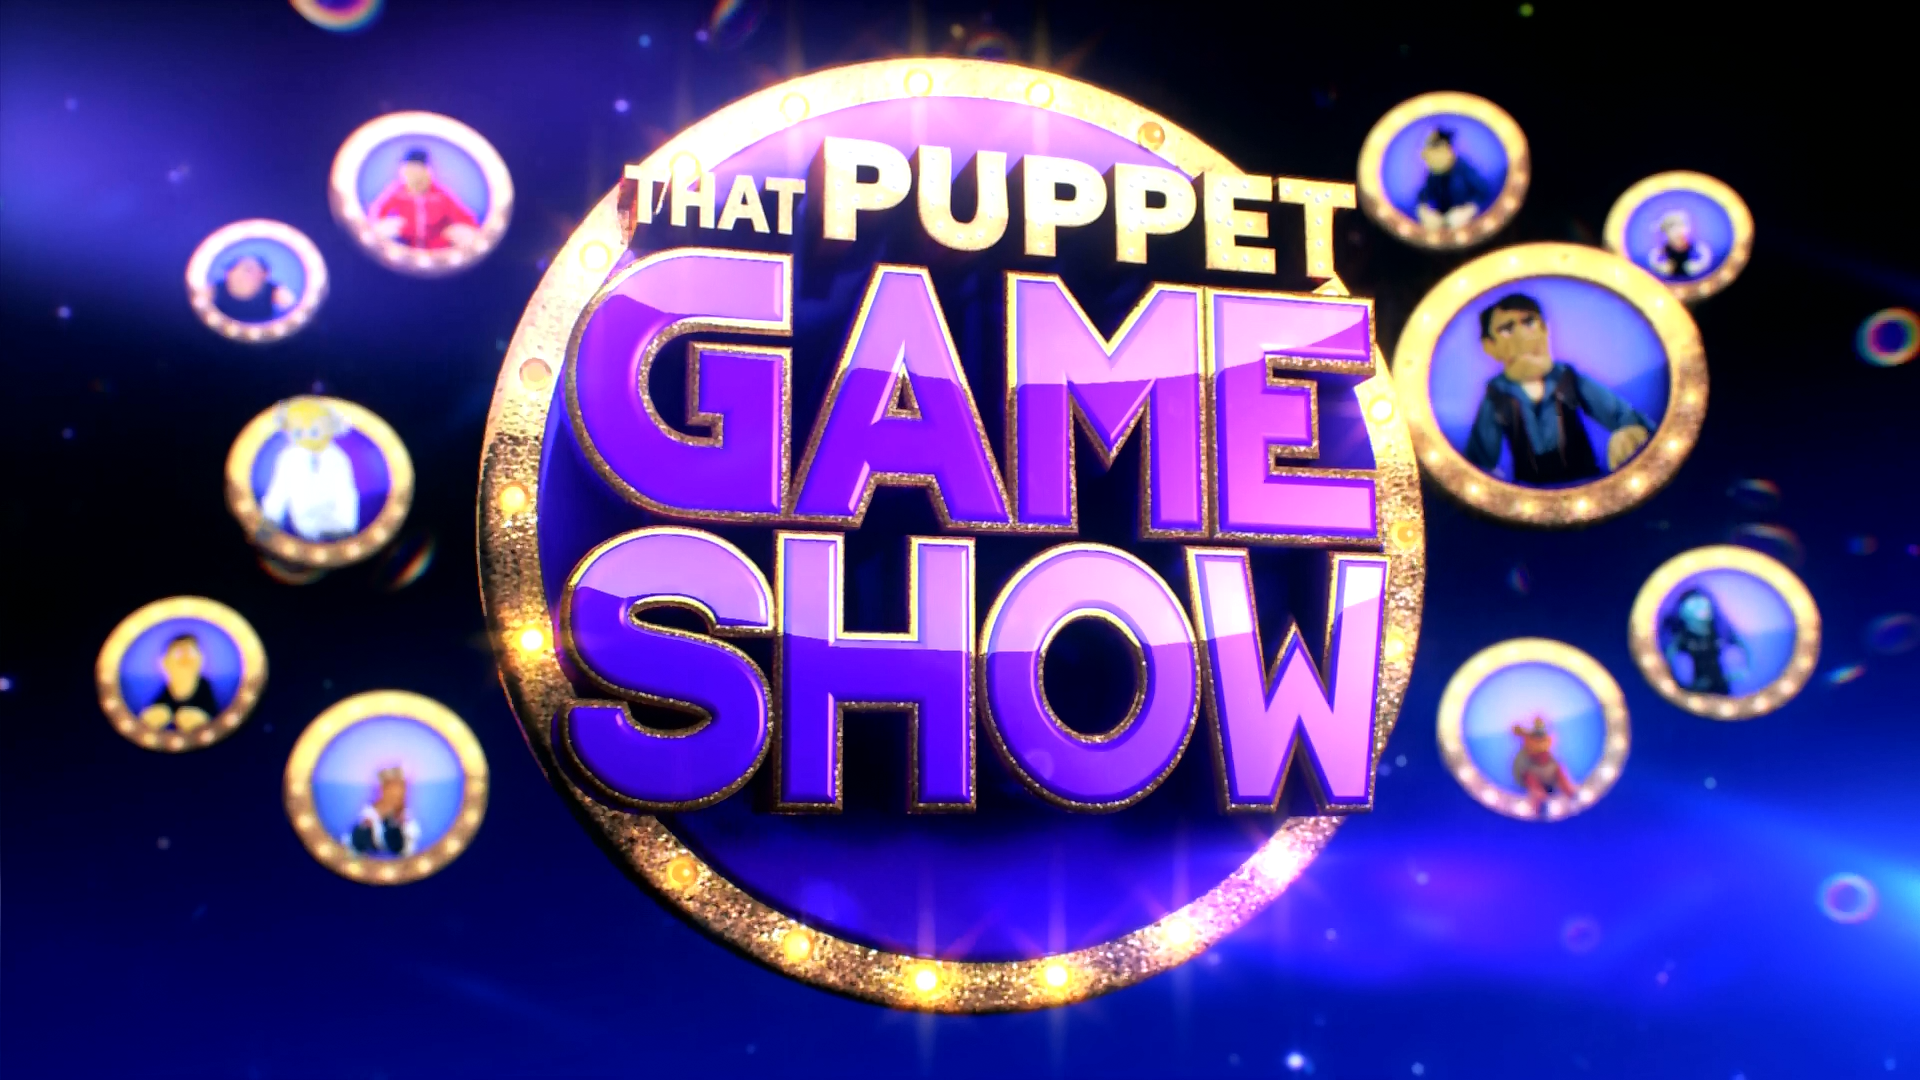 That Puppet Game Show Logopedia FANDOM powered by Wikia 1920x1080